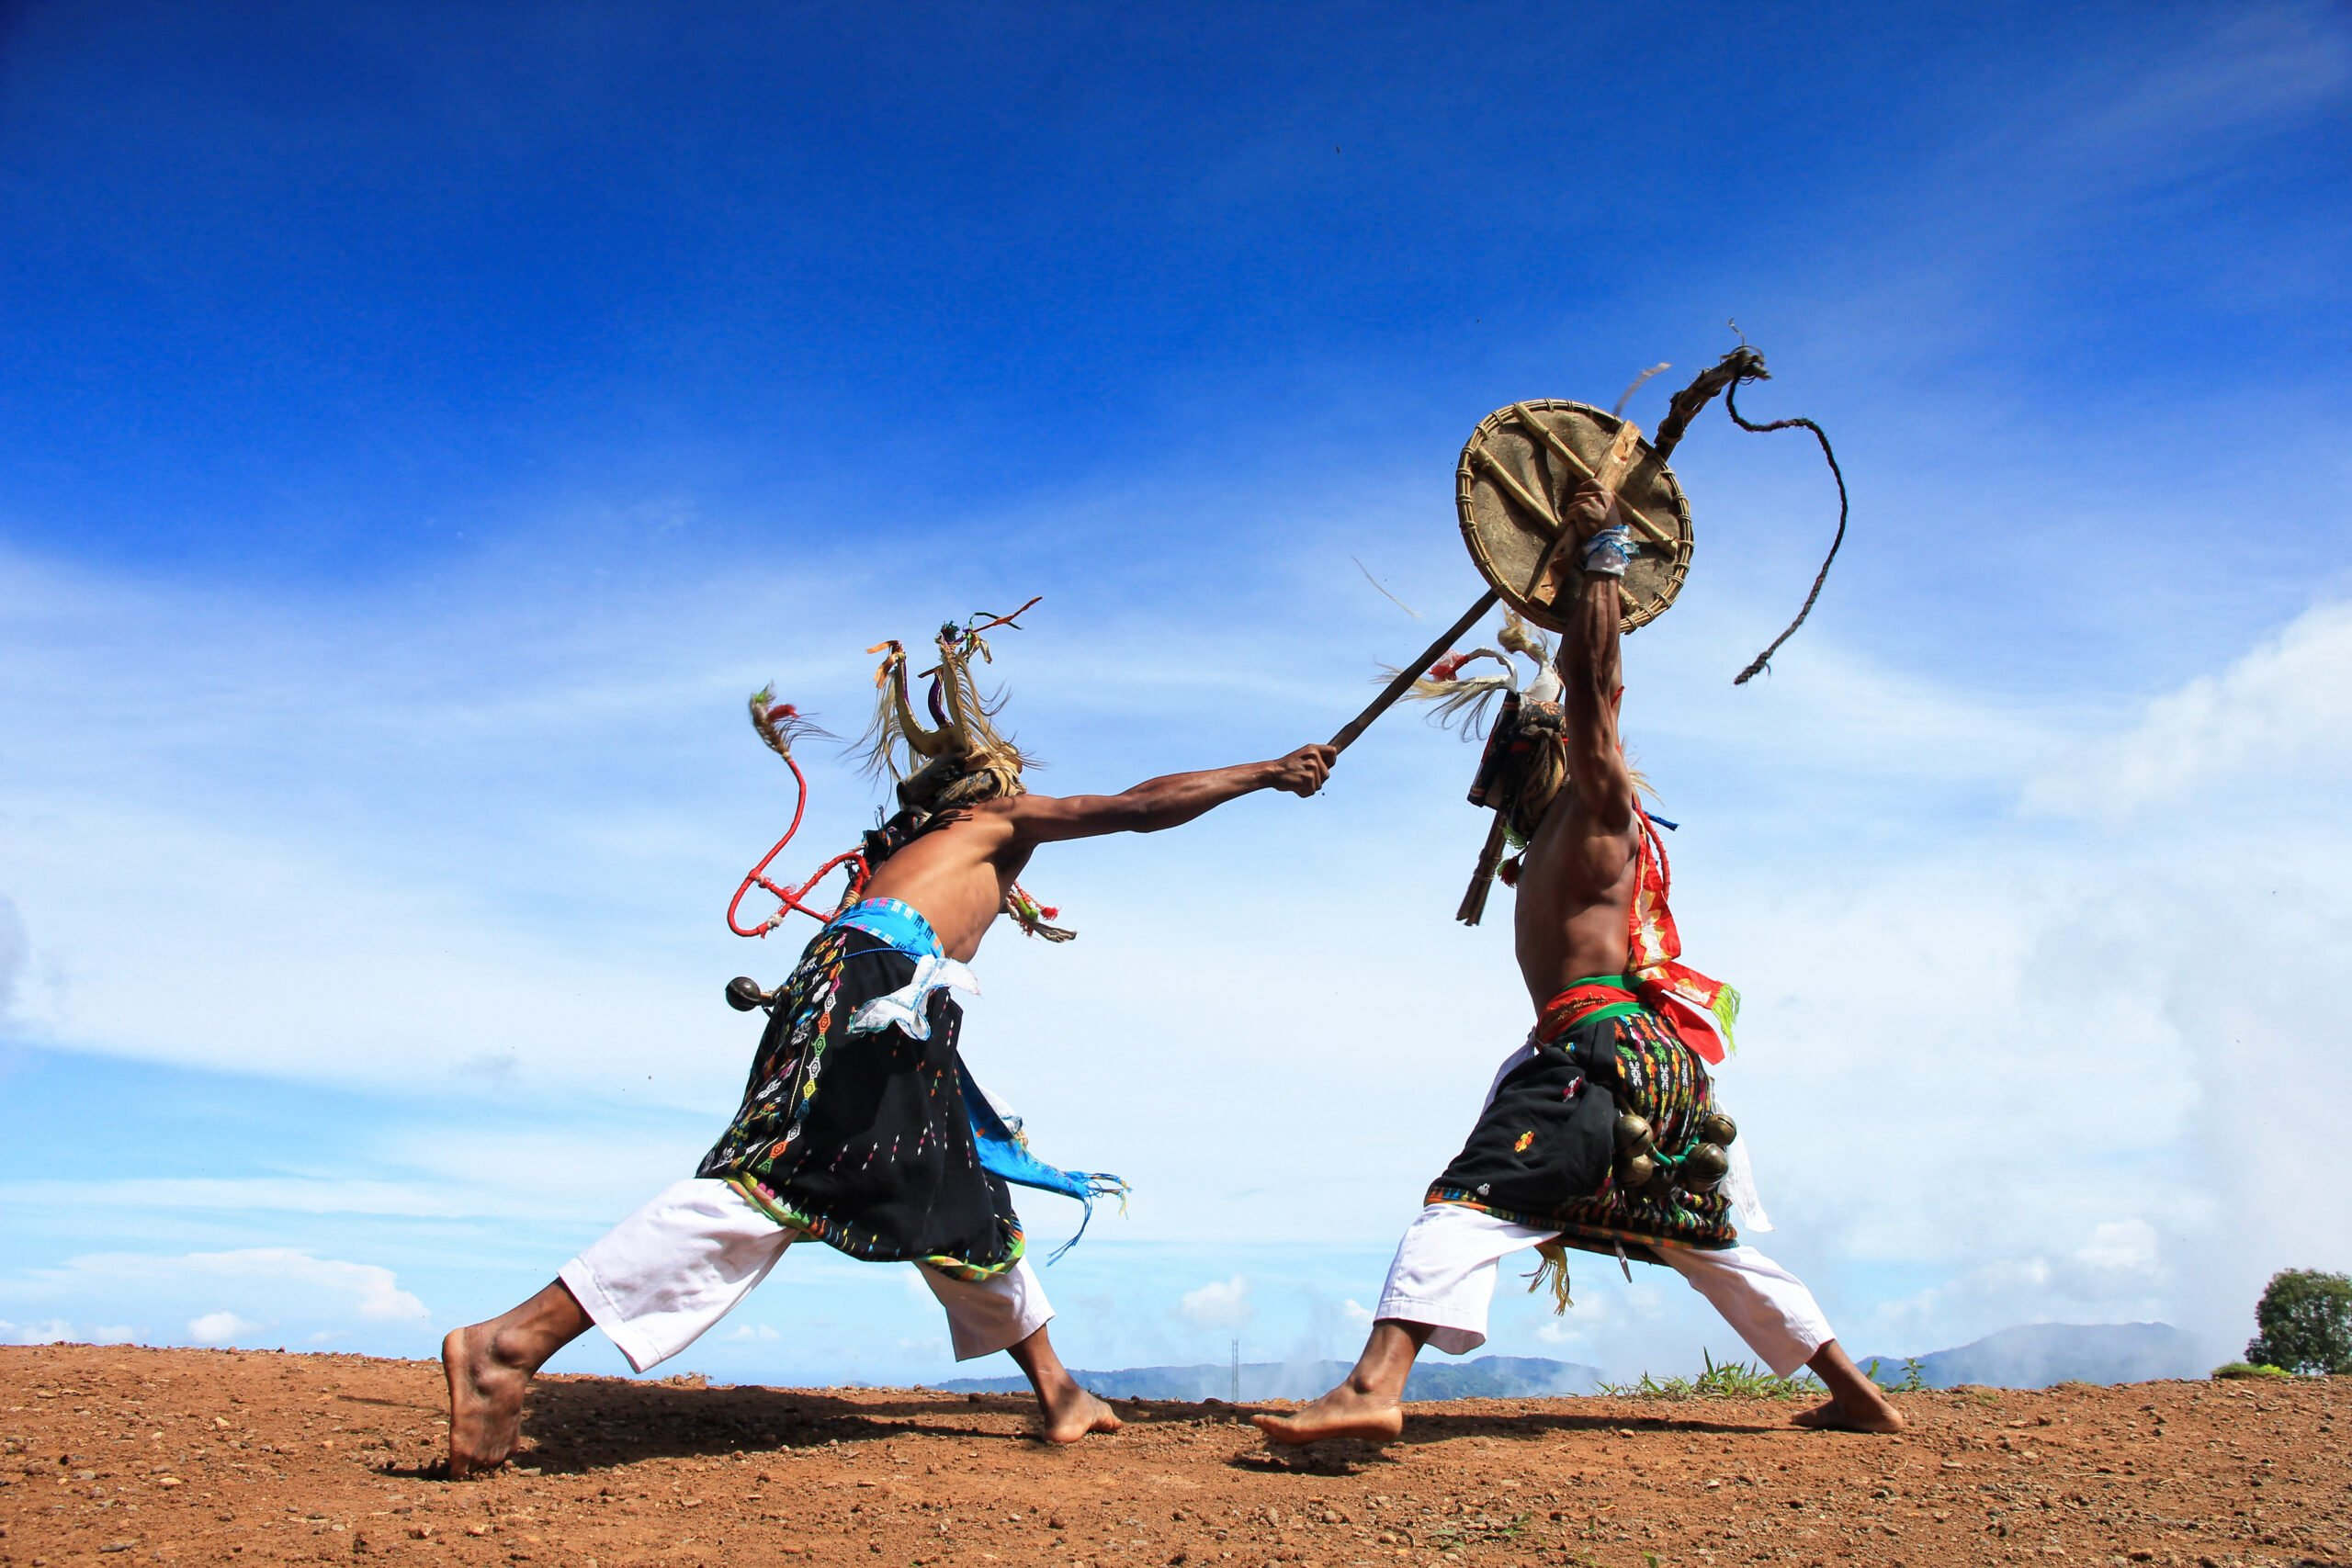 Enjoy A Performance Of The Traditional Caci Dance During The Flores Cultural Tour From Labuan Bajo